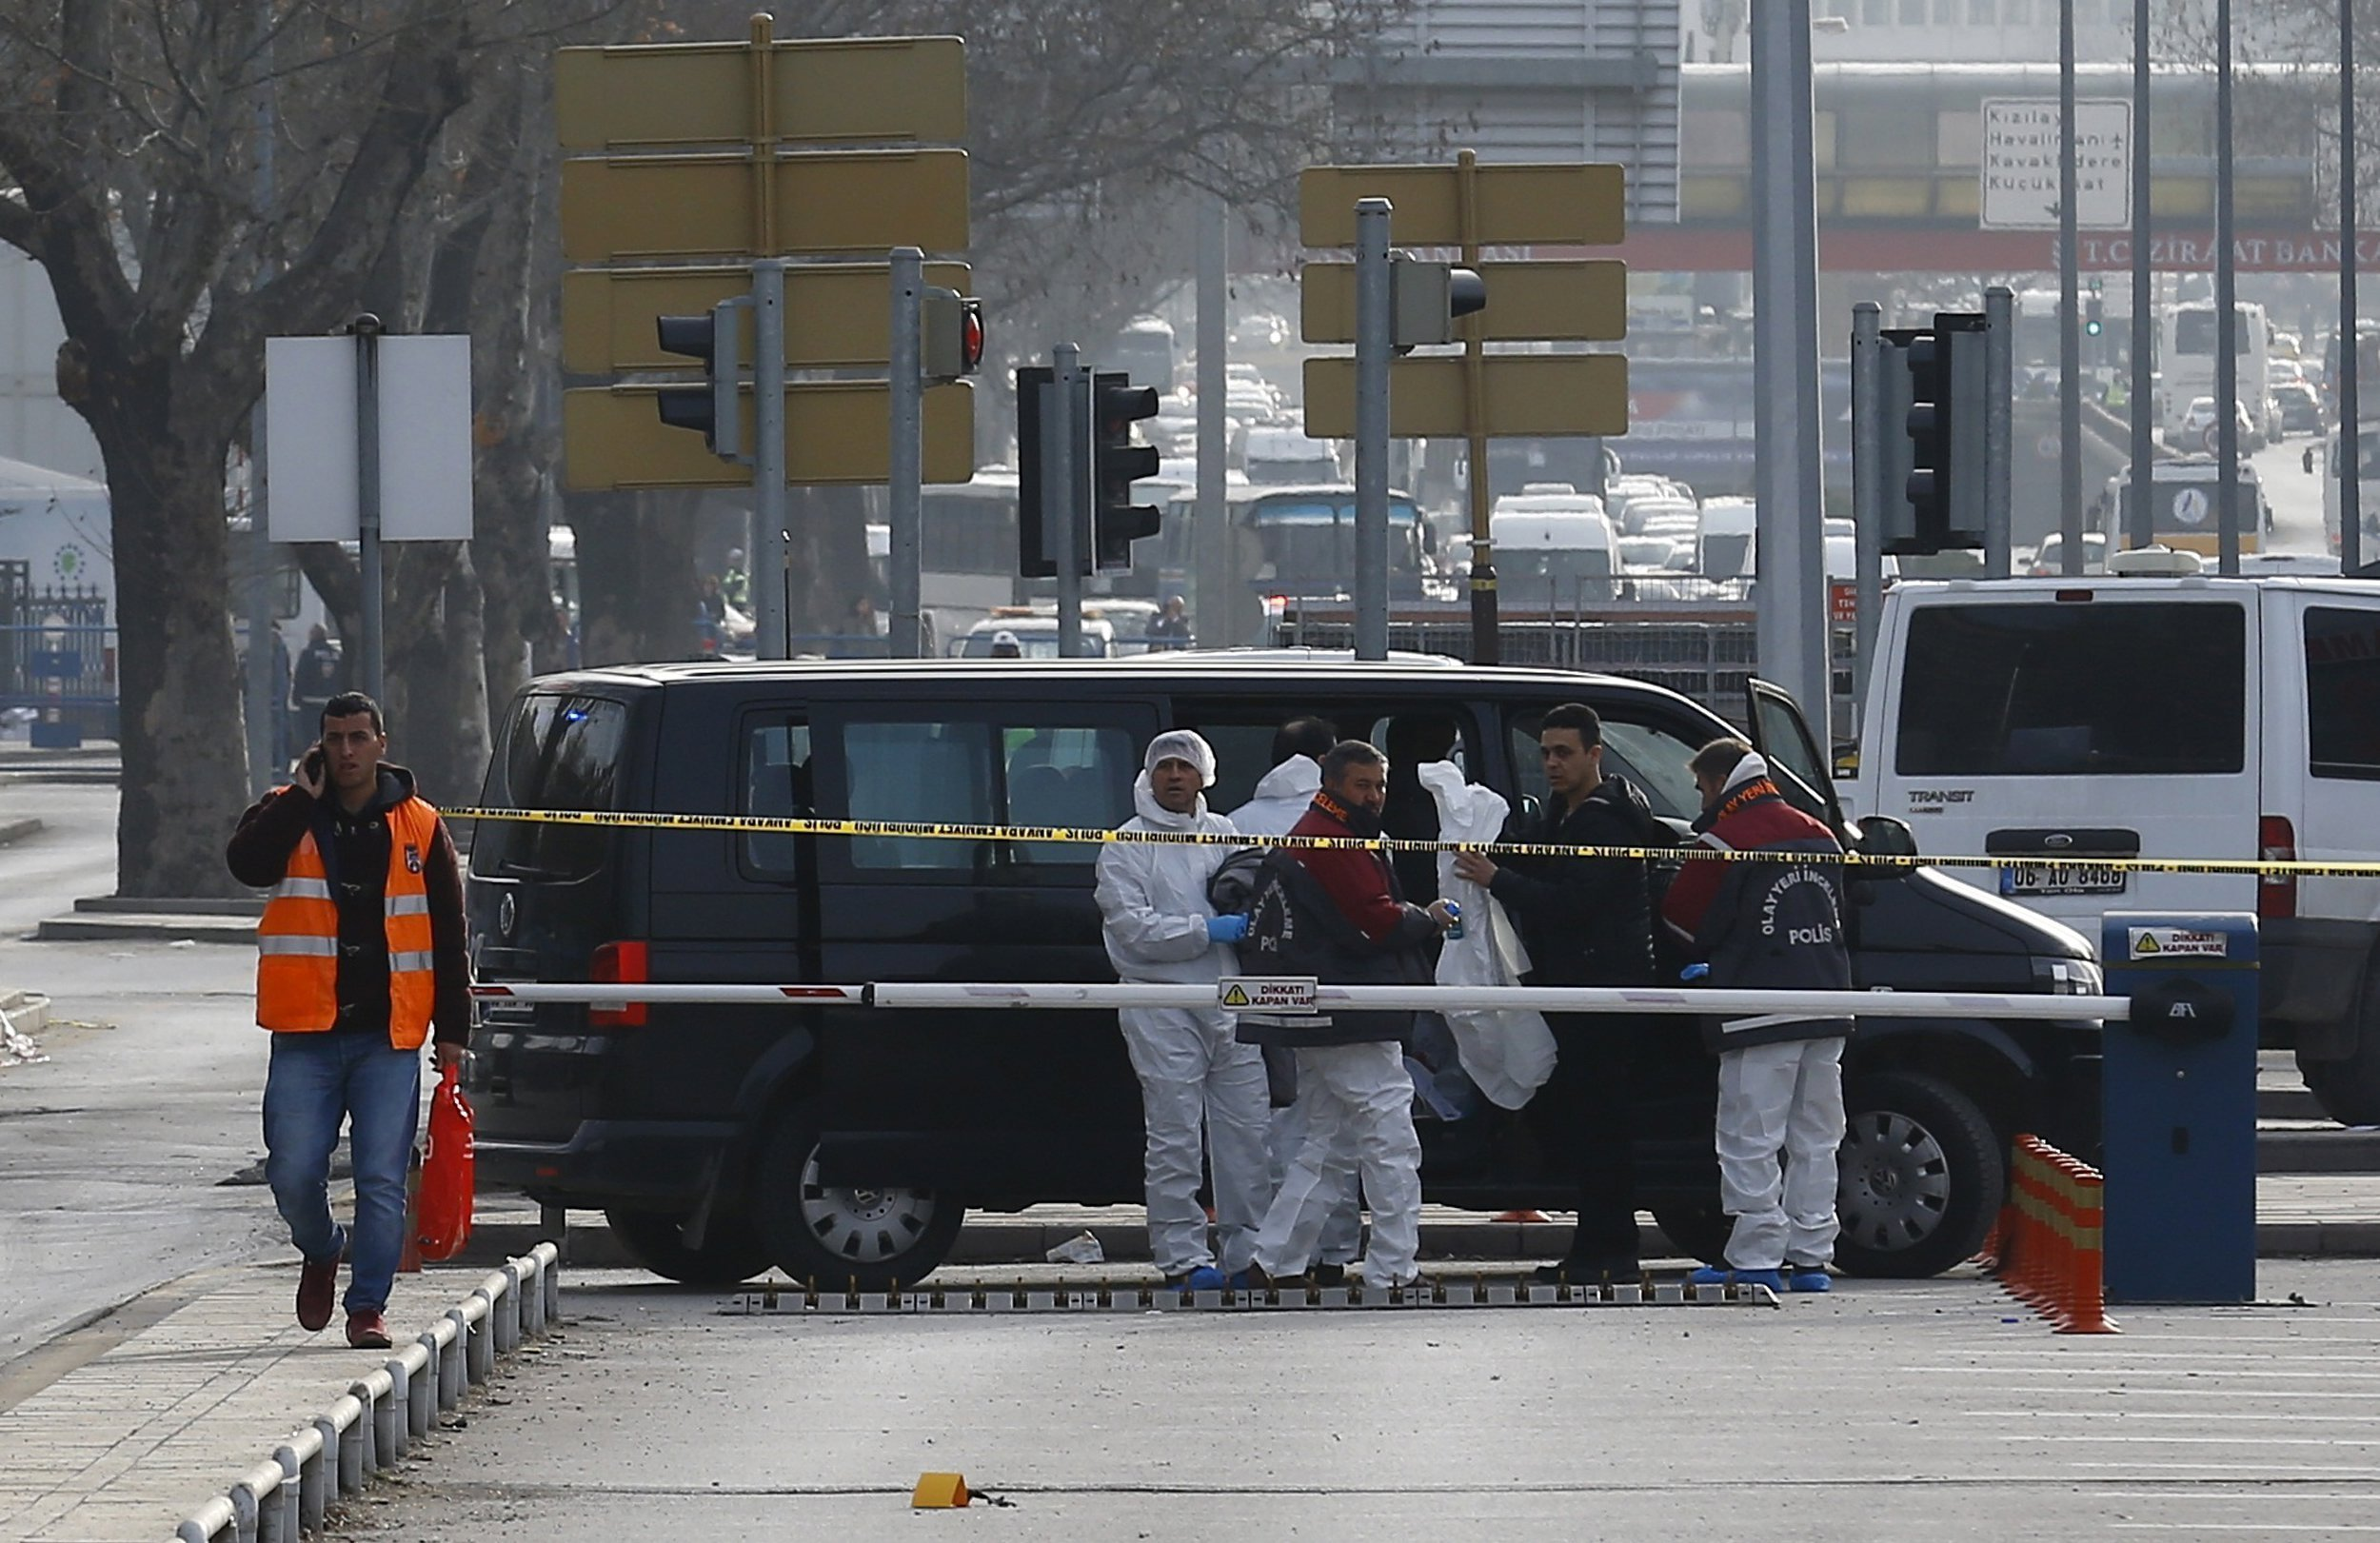 Forensic experts arrive at the of site last night's explosion in Ankara, Turkey